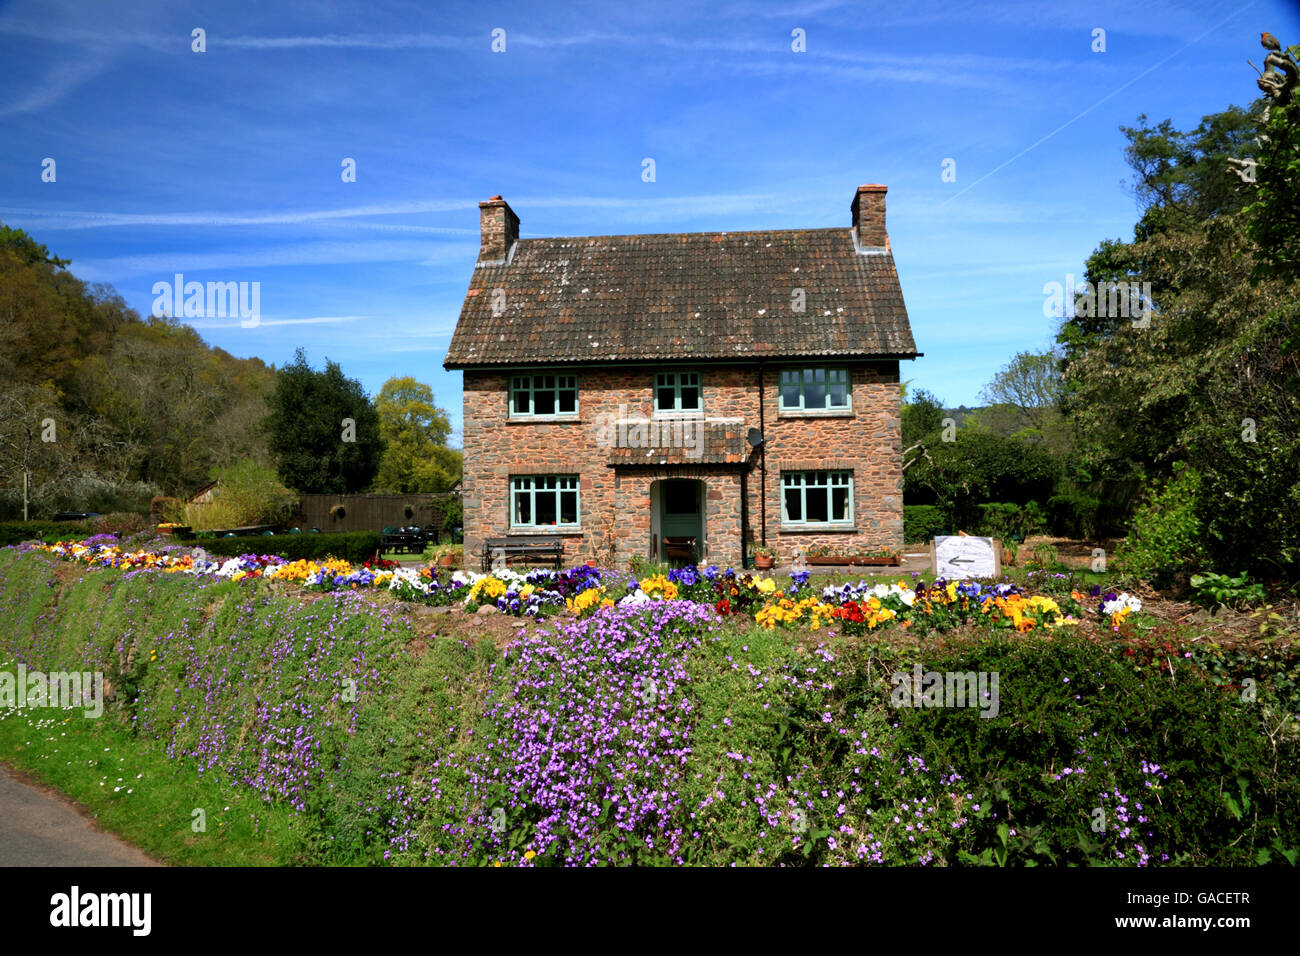 A square cottage with a flower filled garden. - Stock Image